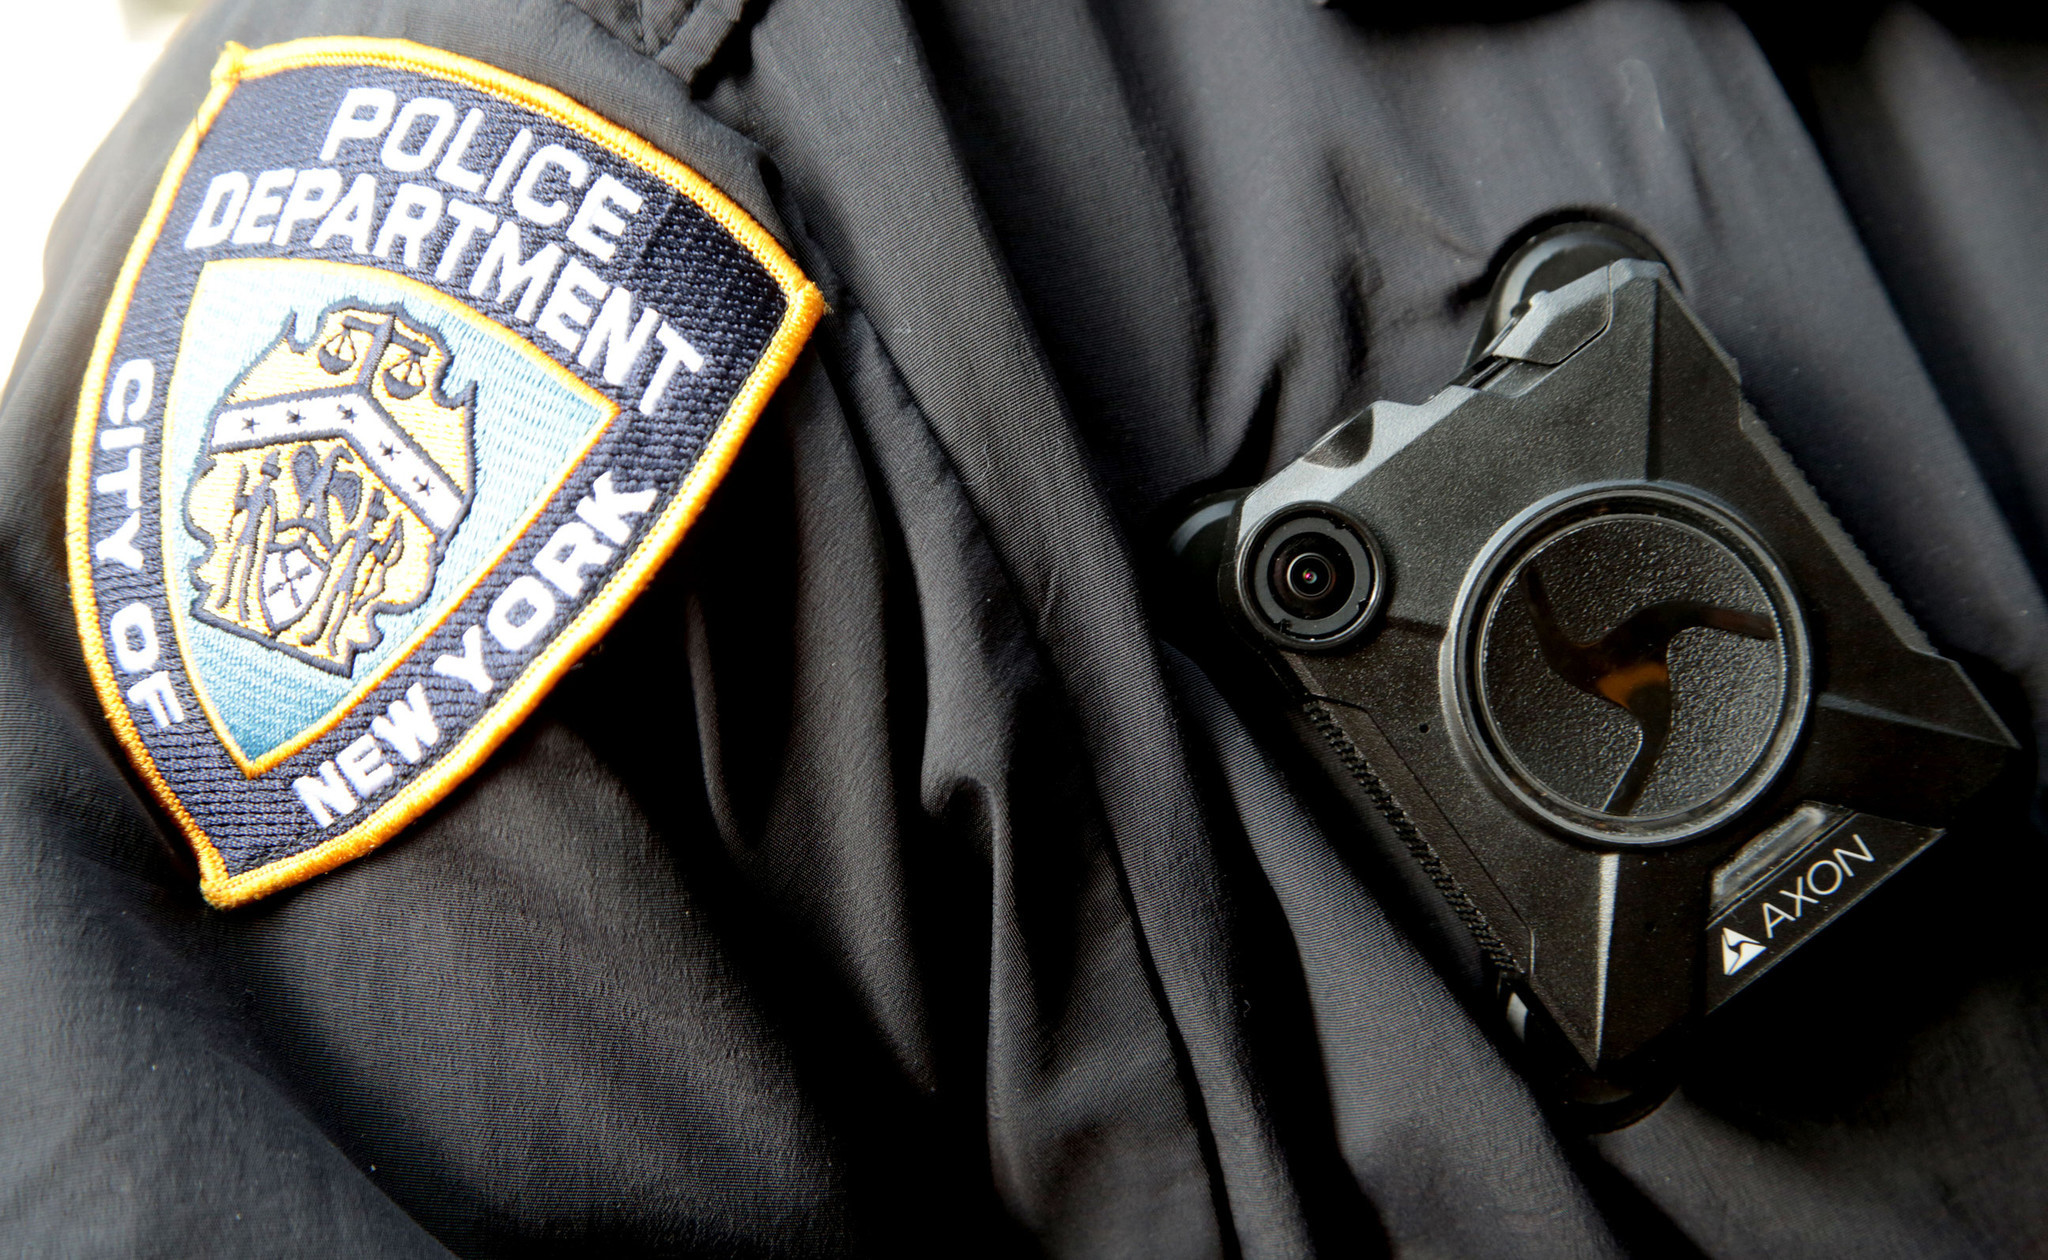 The body-worn camera footage we need: The head of the city's Civilian Complaint Review Board wants more timely access from the NYPD